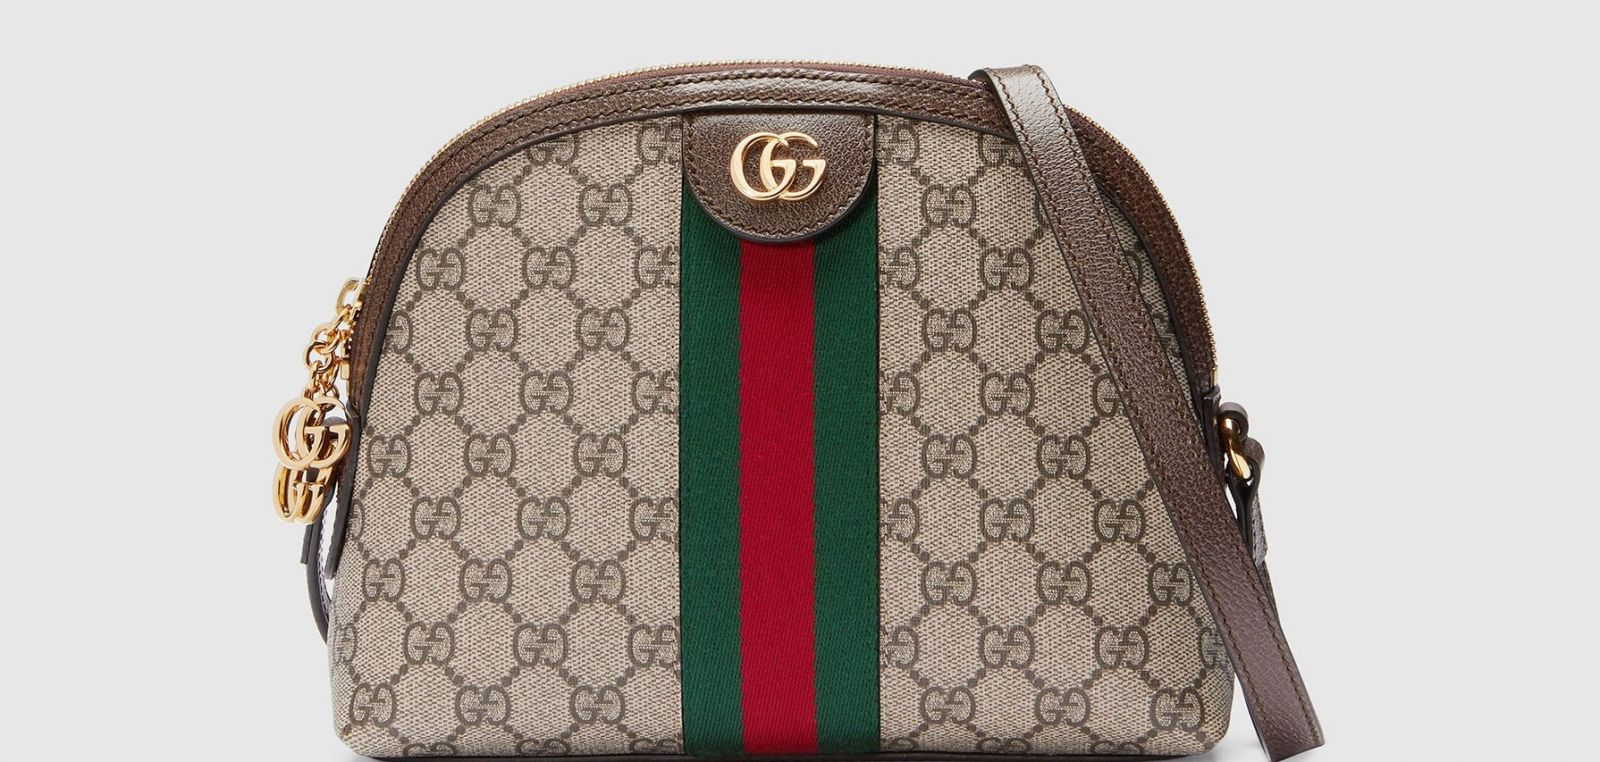 Gucci Ophidia